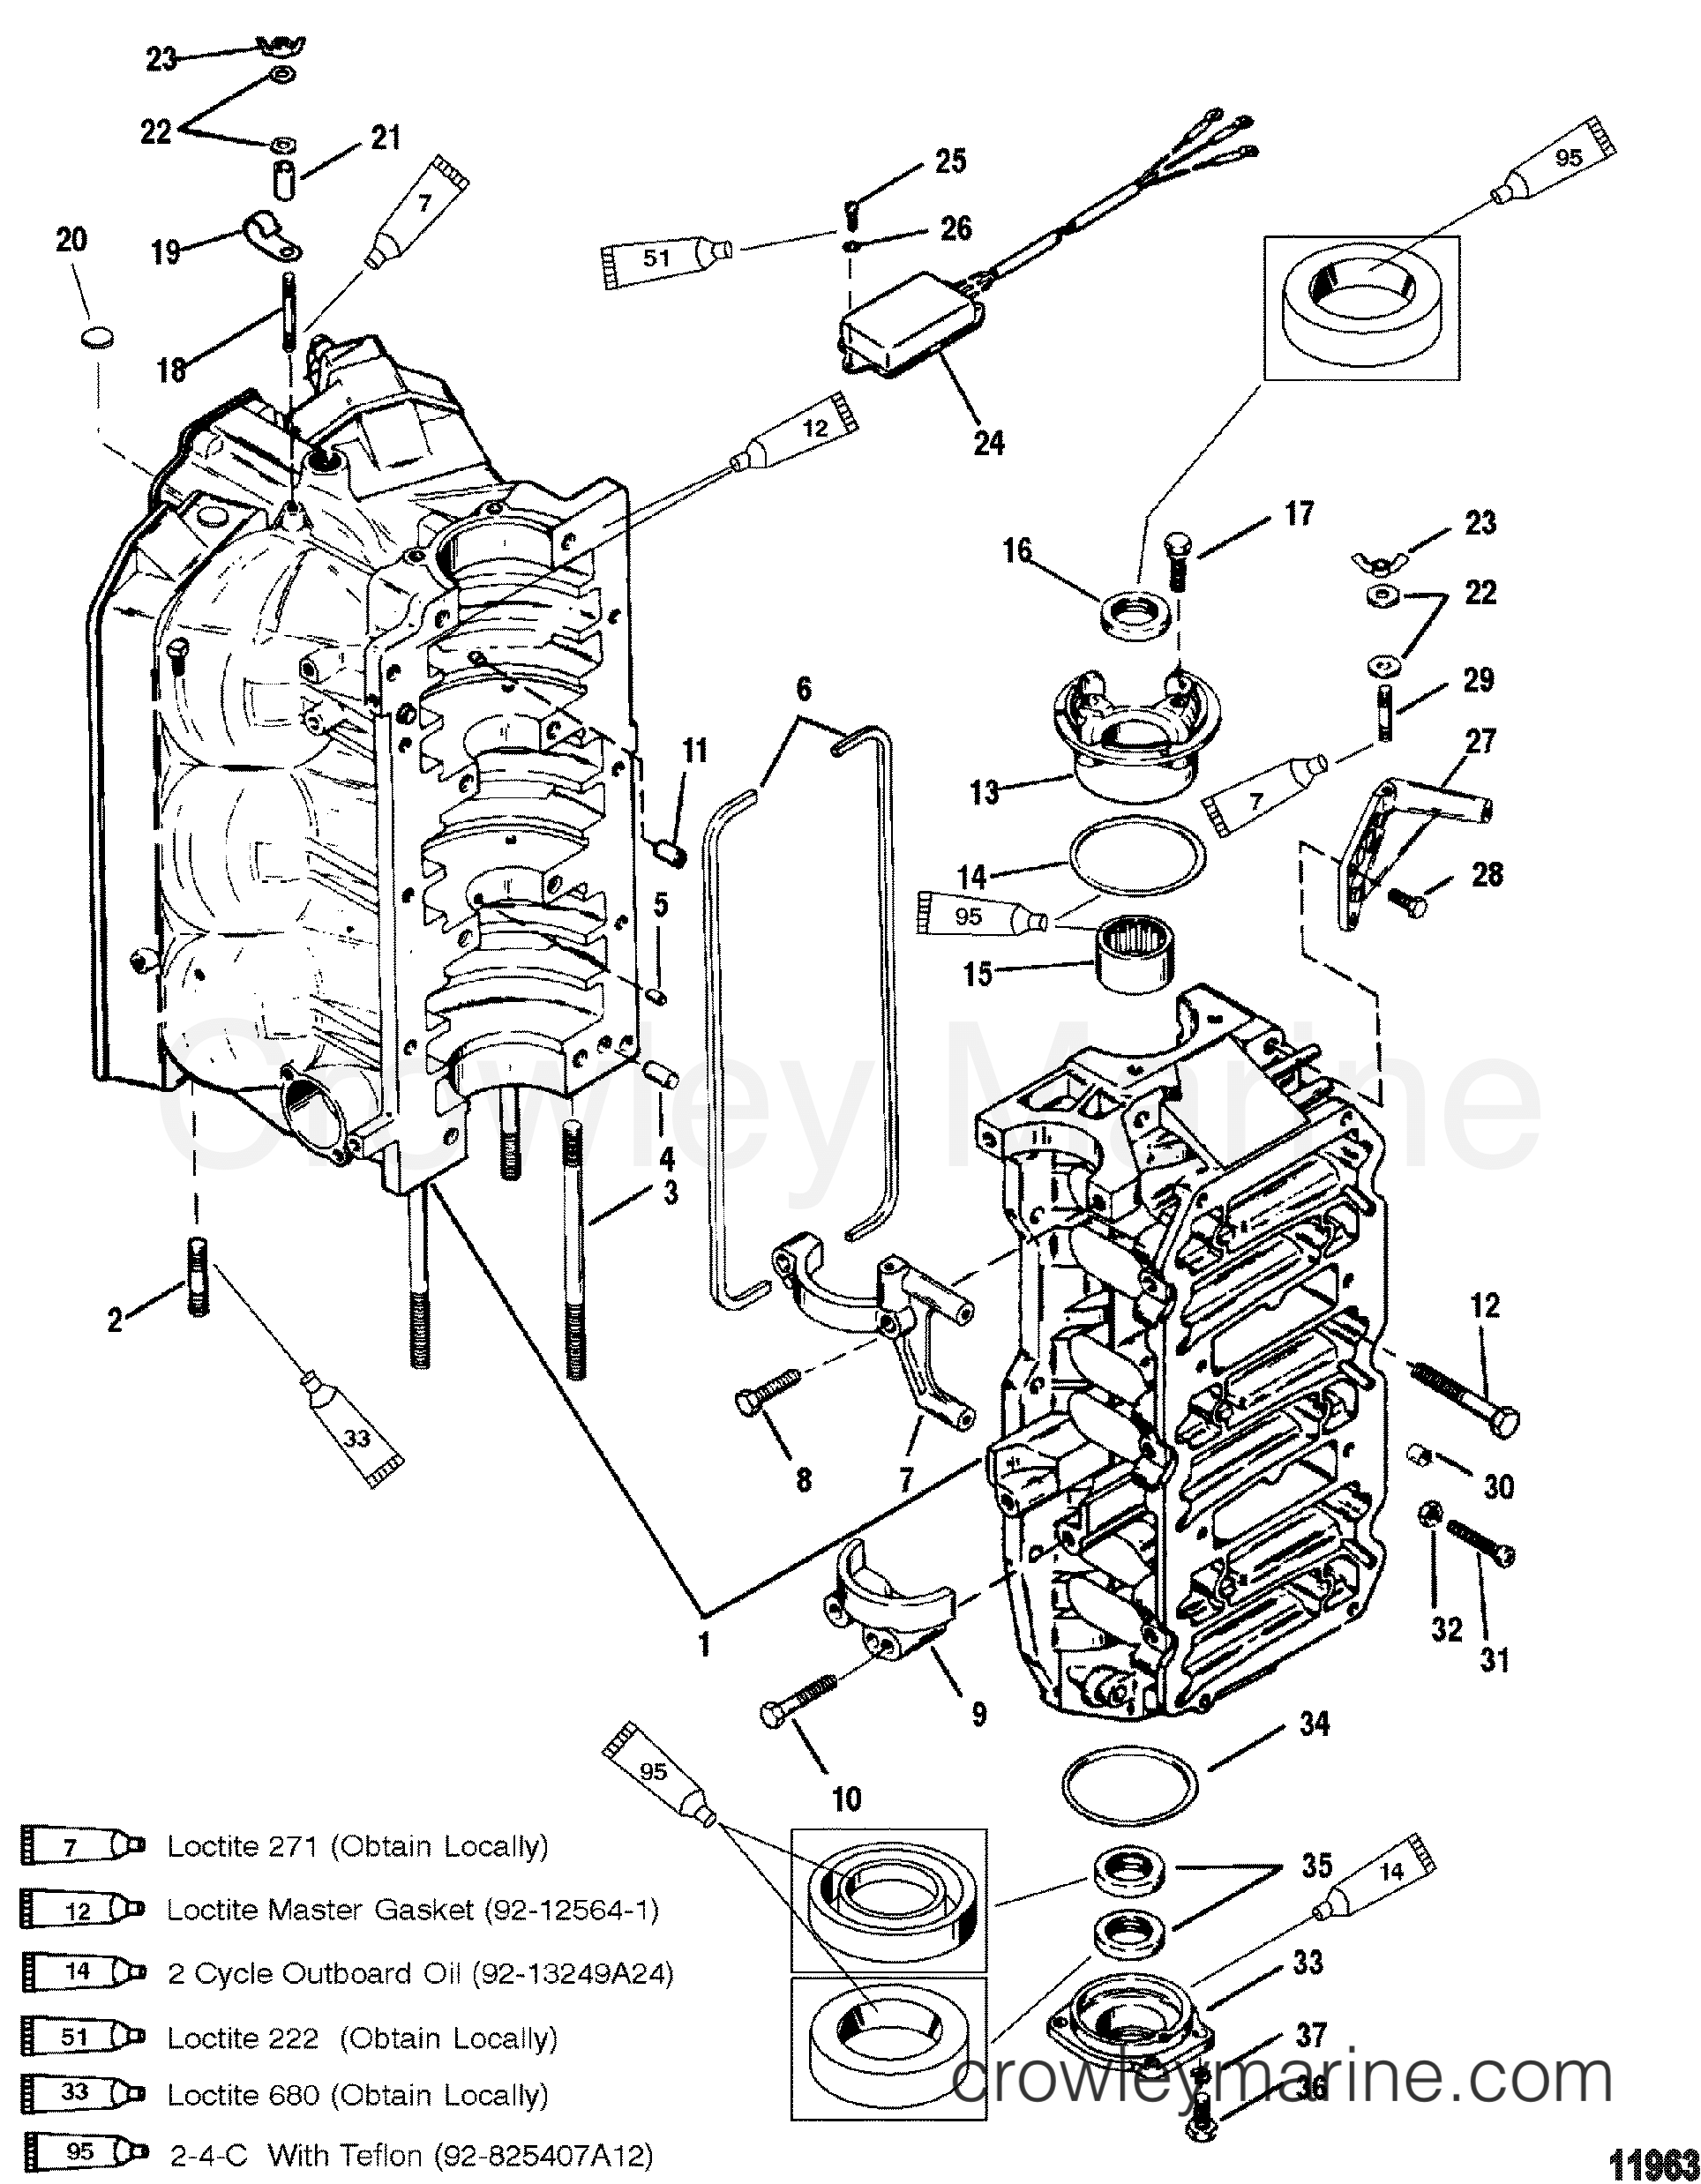 79 Yamaha Outboard Motor Wiring Diagrams Archive Of Automotive Motors Starting Know About Rh Prezzy Co